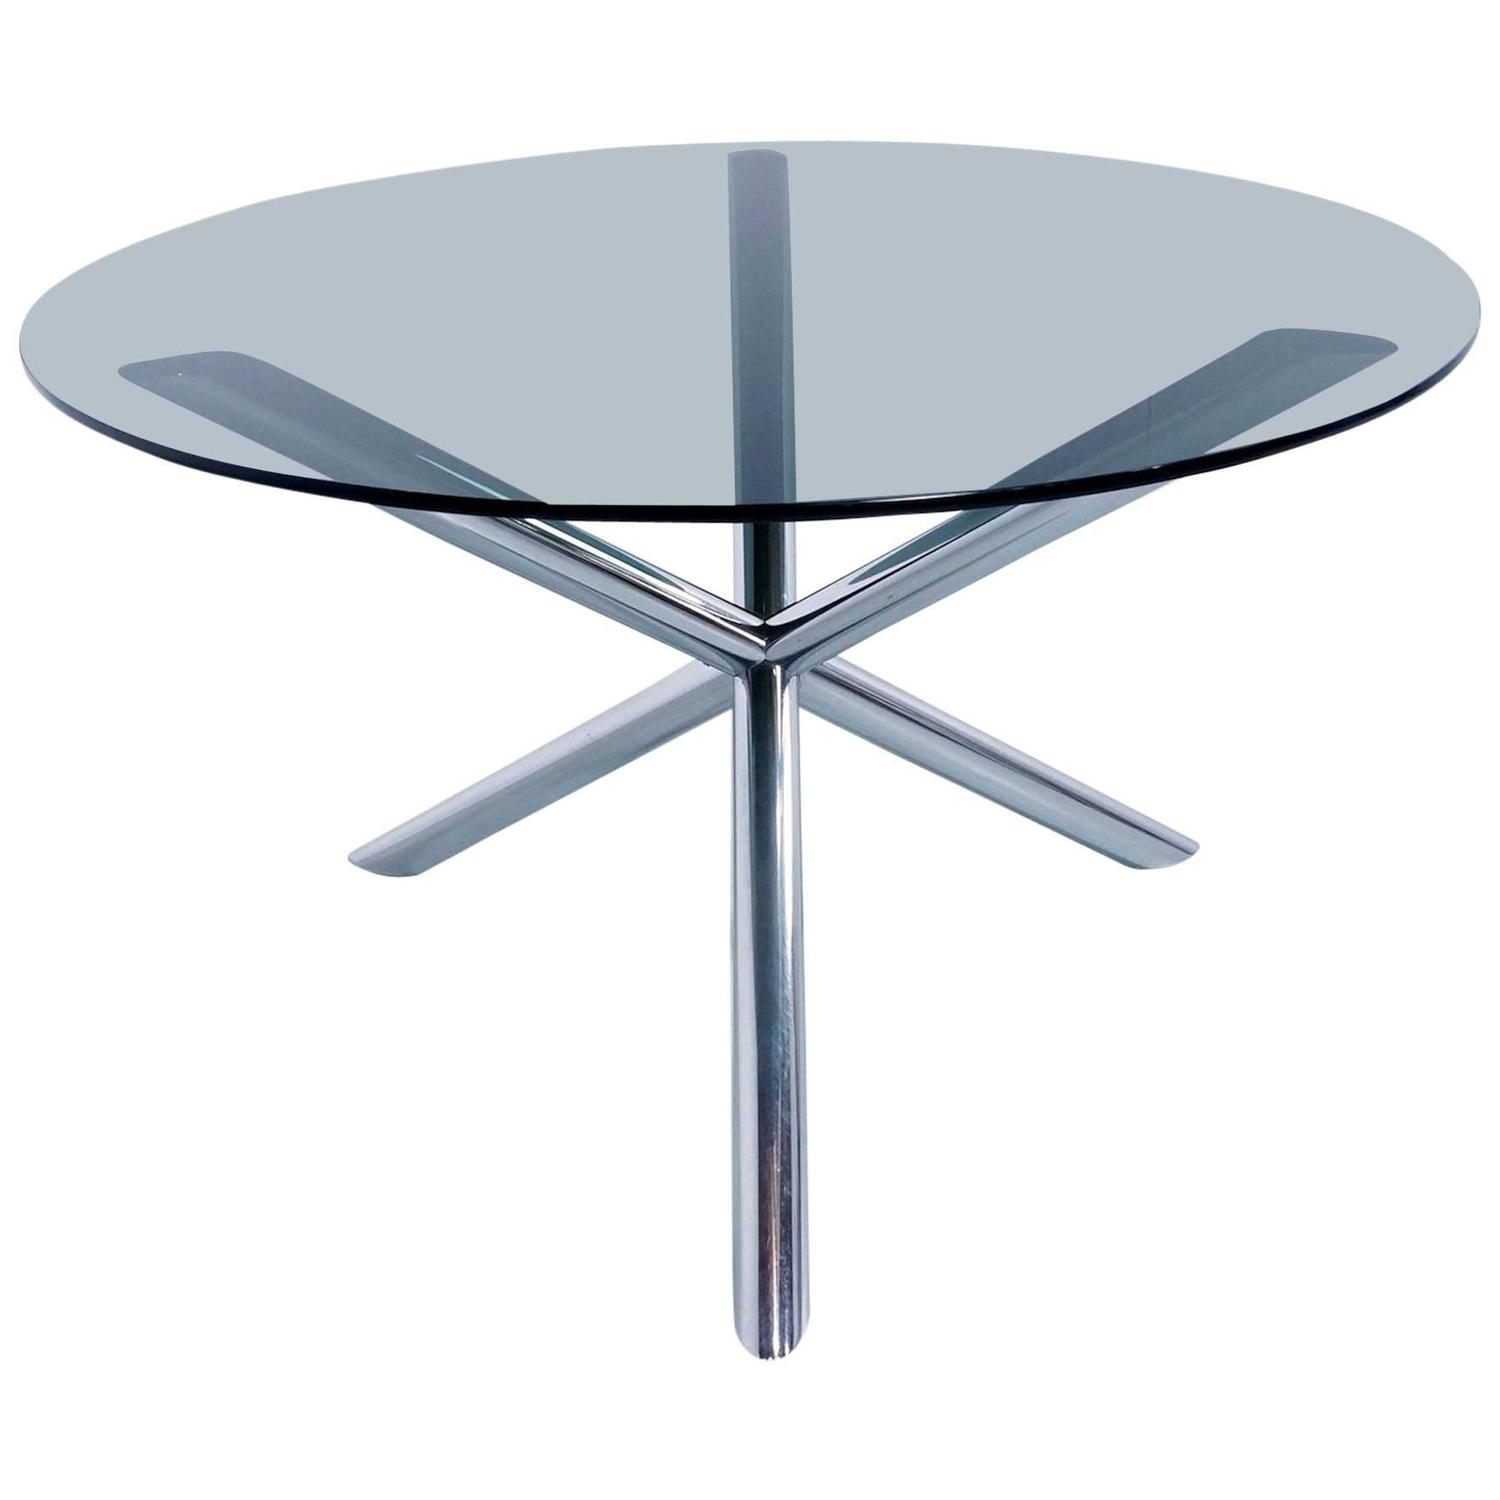 top s round dining table in chrome and smoked glass by roche bobois for sale at stdibs with. Black Bedroom Furniture Sets. Home Design Ideas